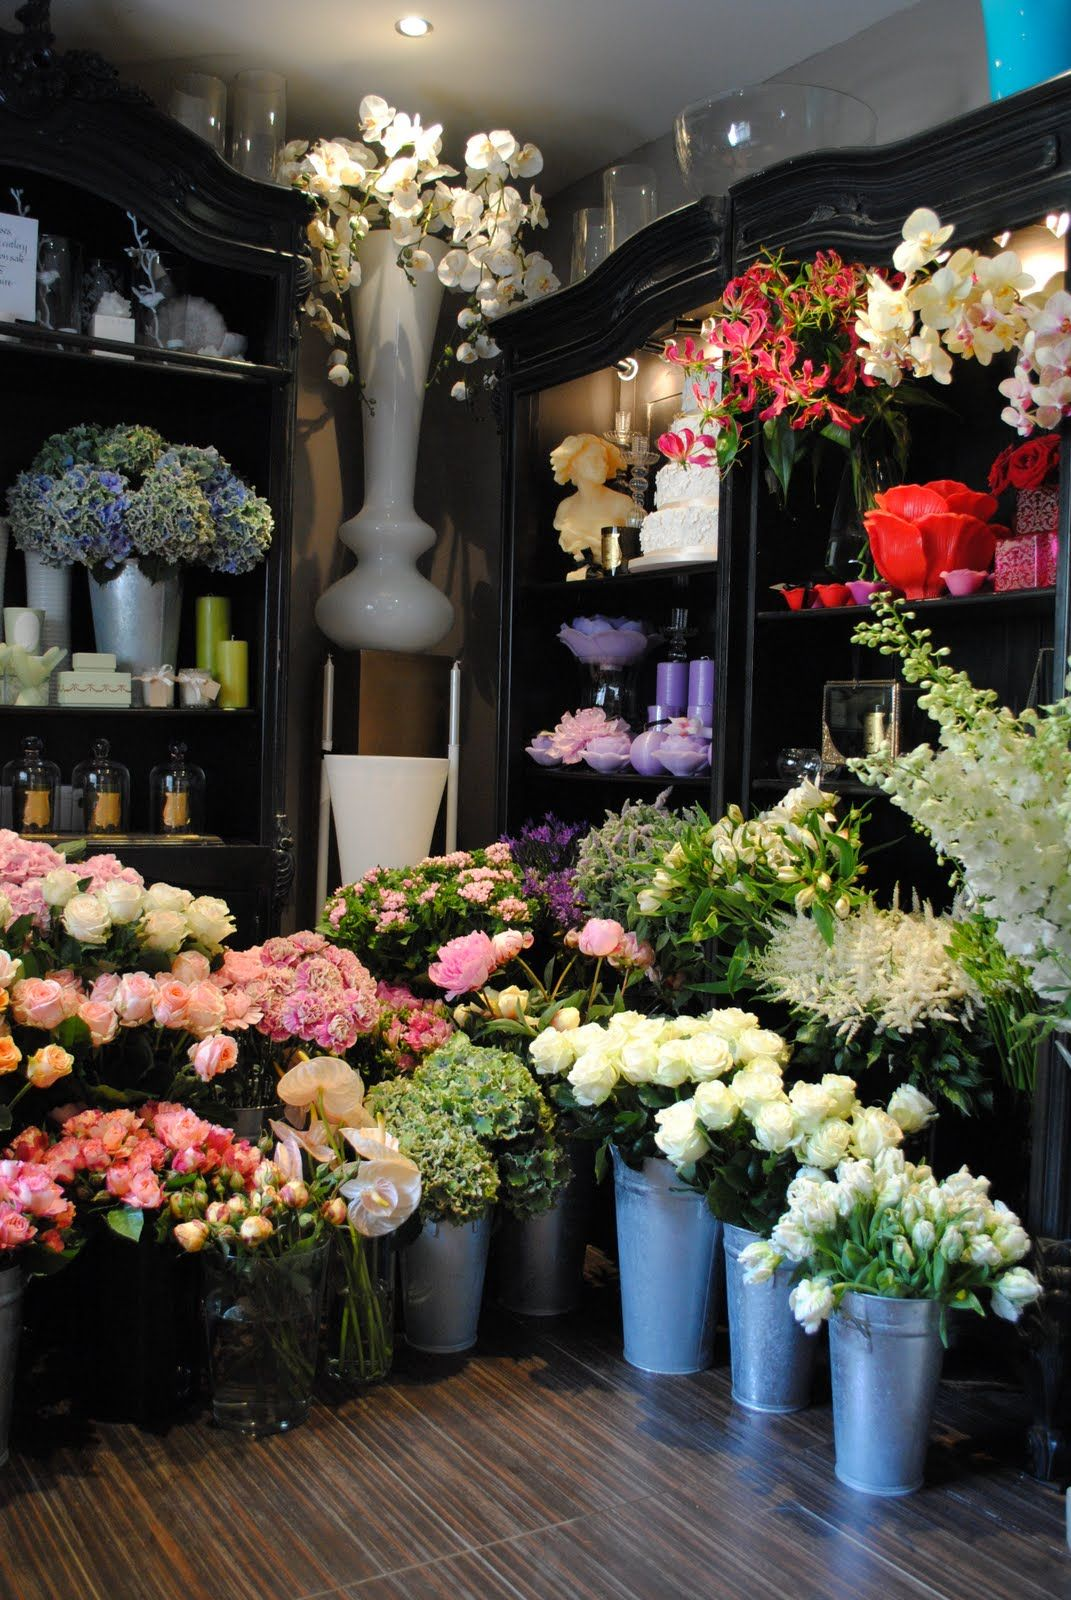 By Appointment Only Design, London flowers look good